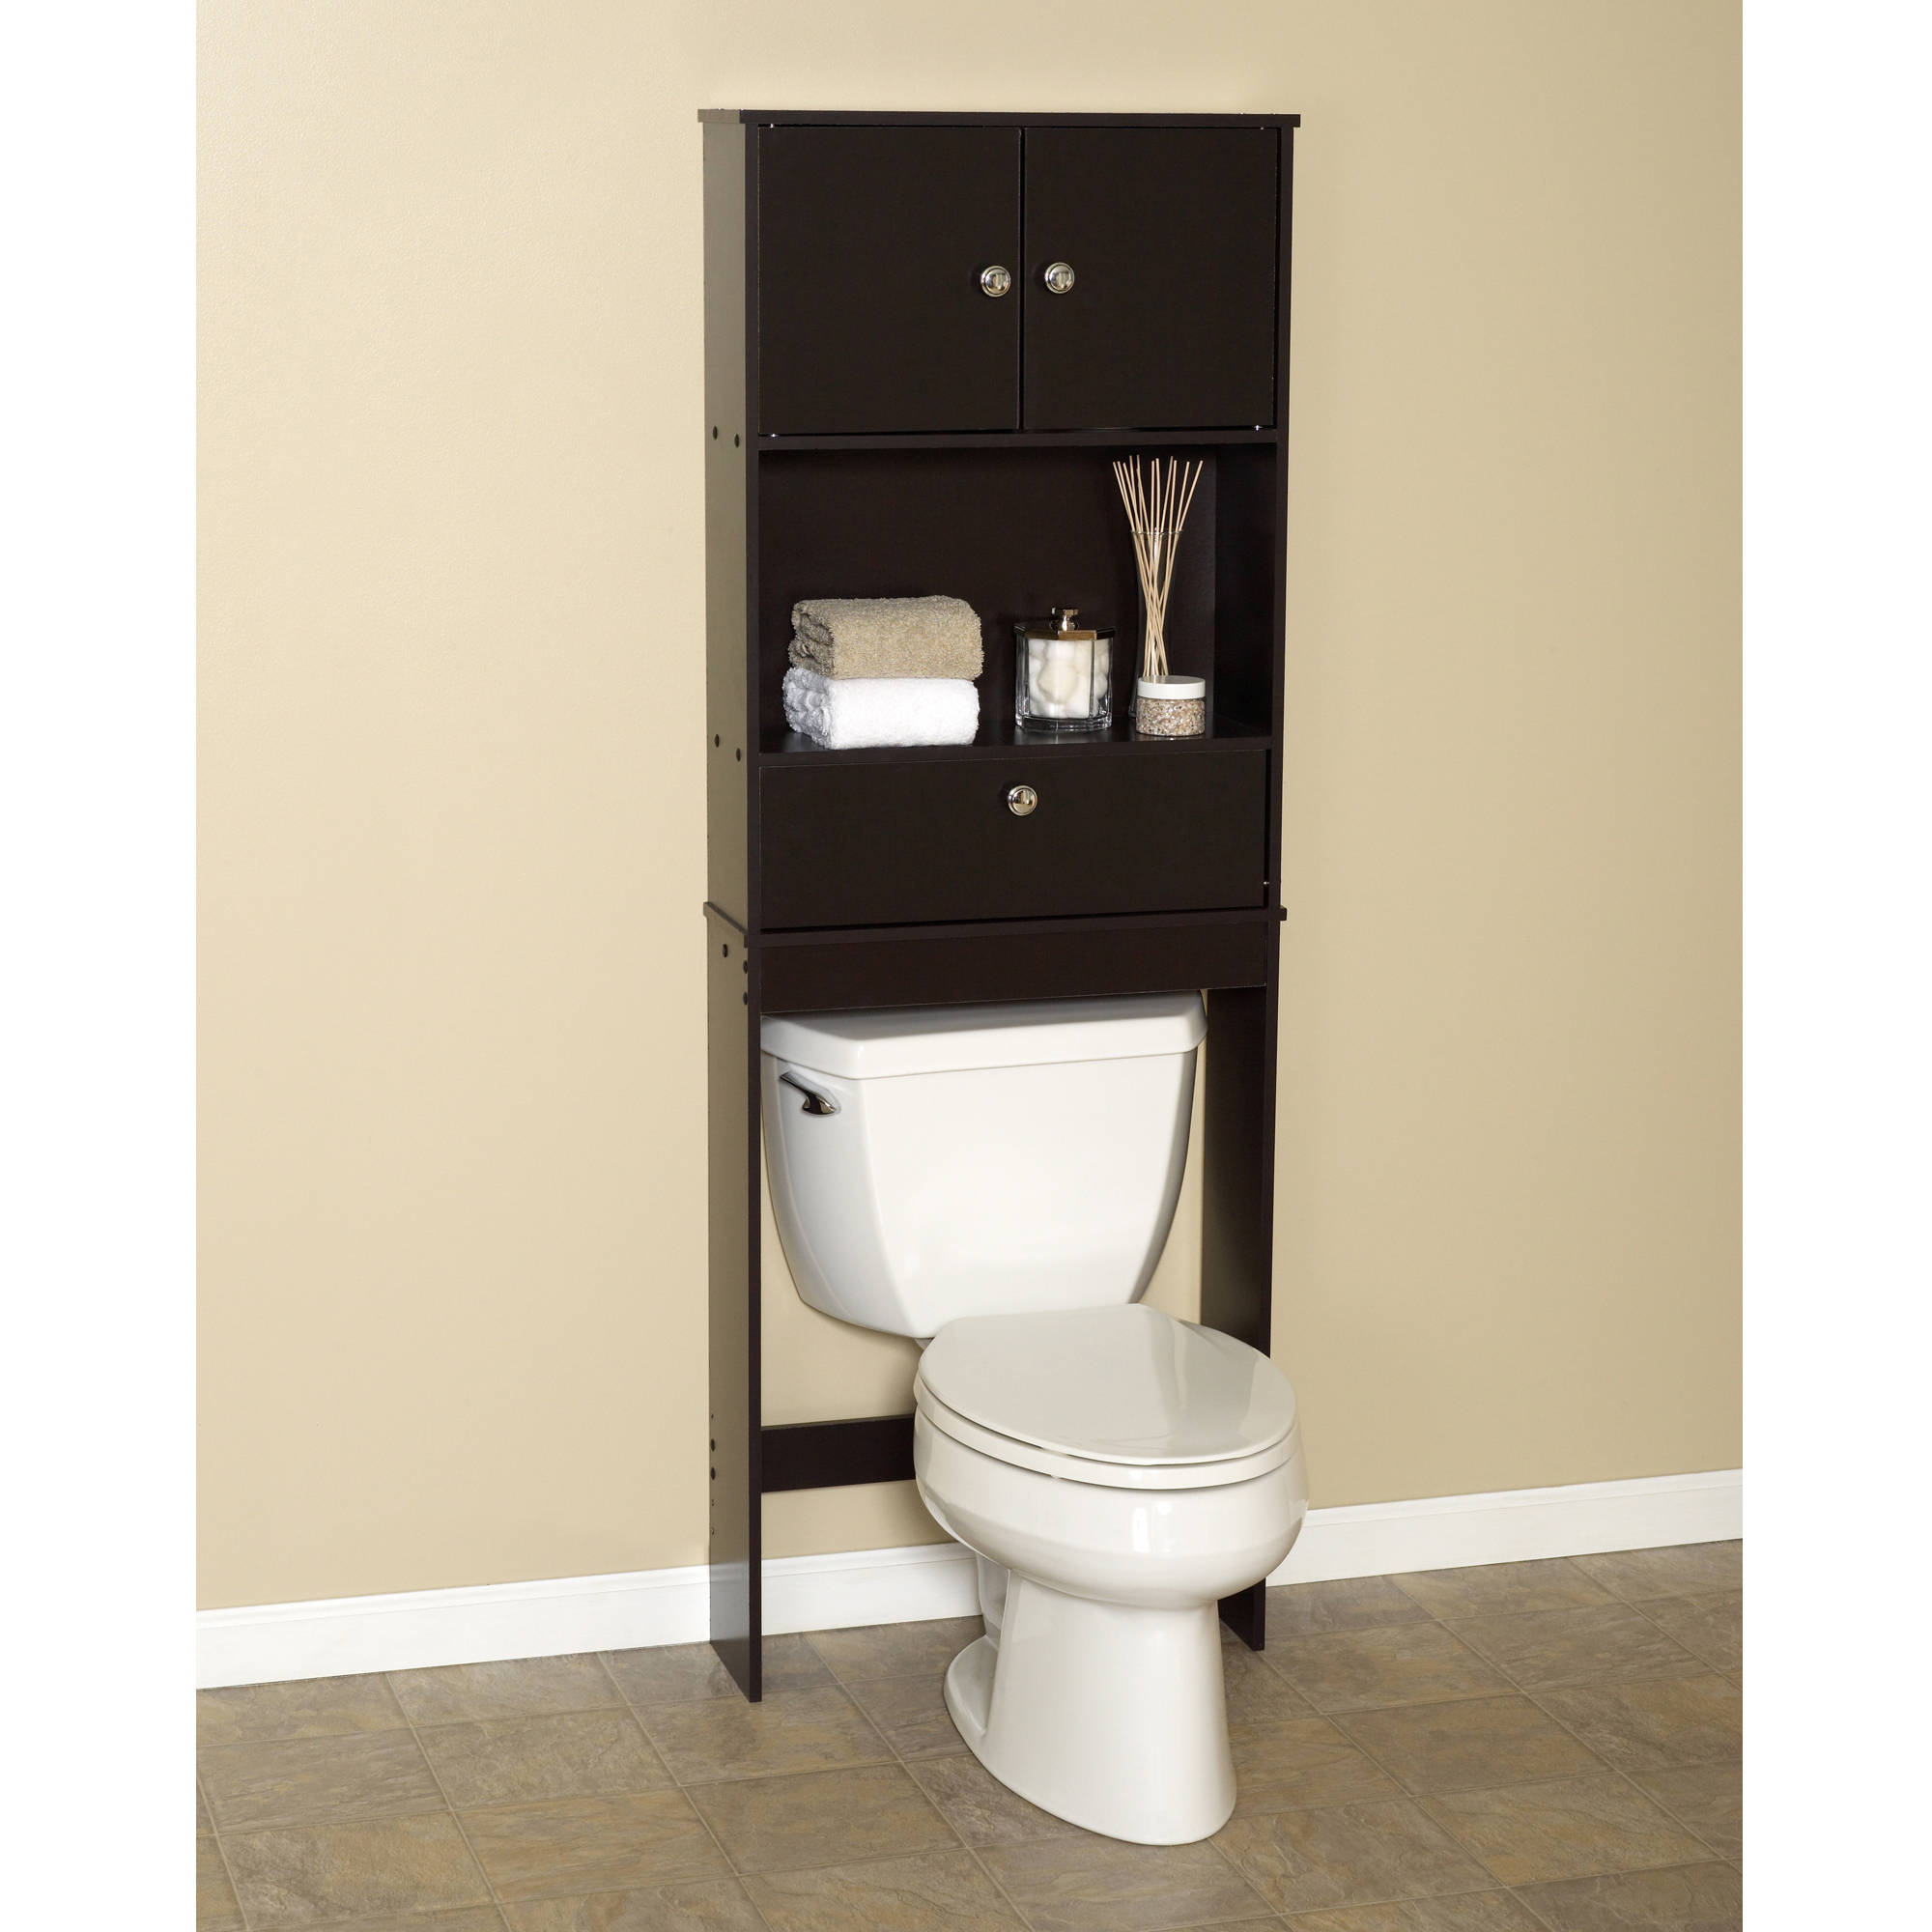 Zenna Home Drop Door Bathroom Spacesaver With 2 Door Cabinet Espresso in measurements 2000 X 2000